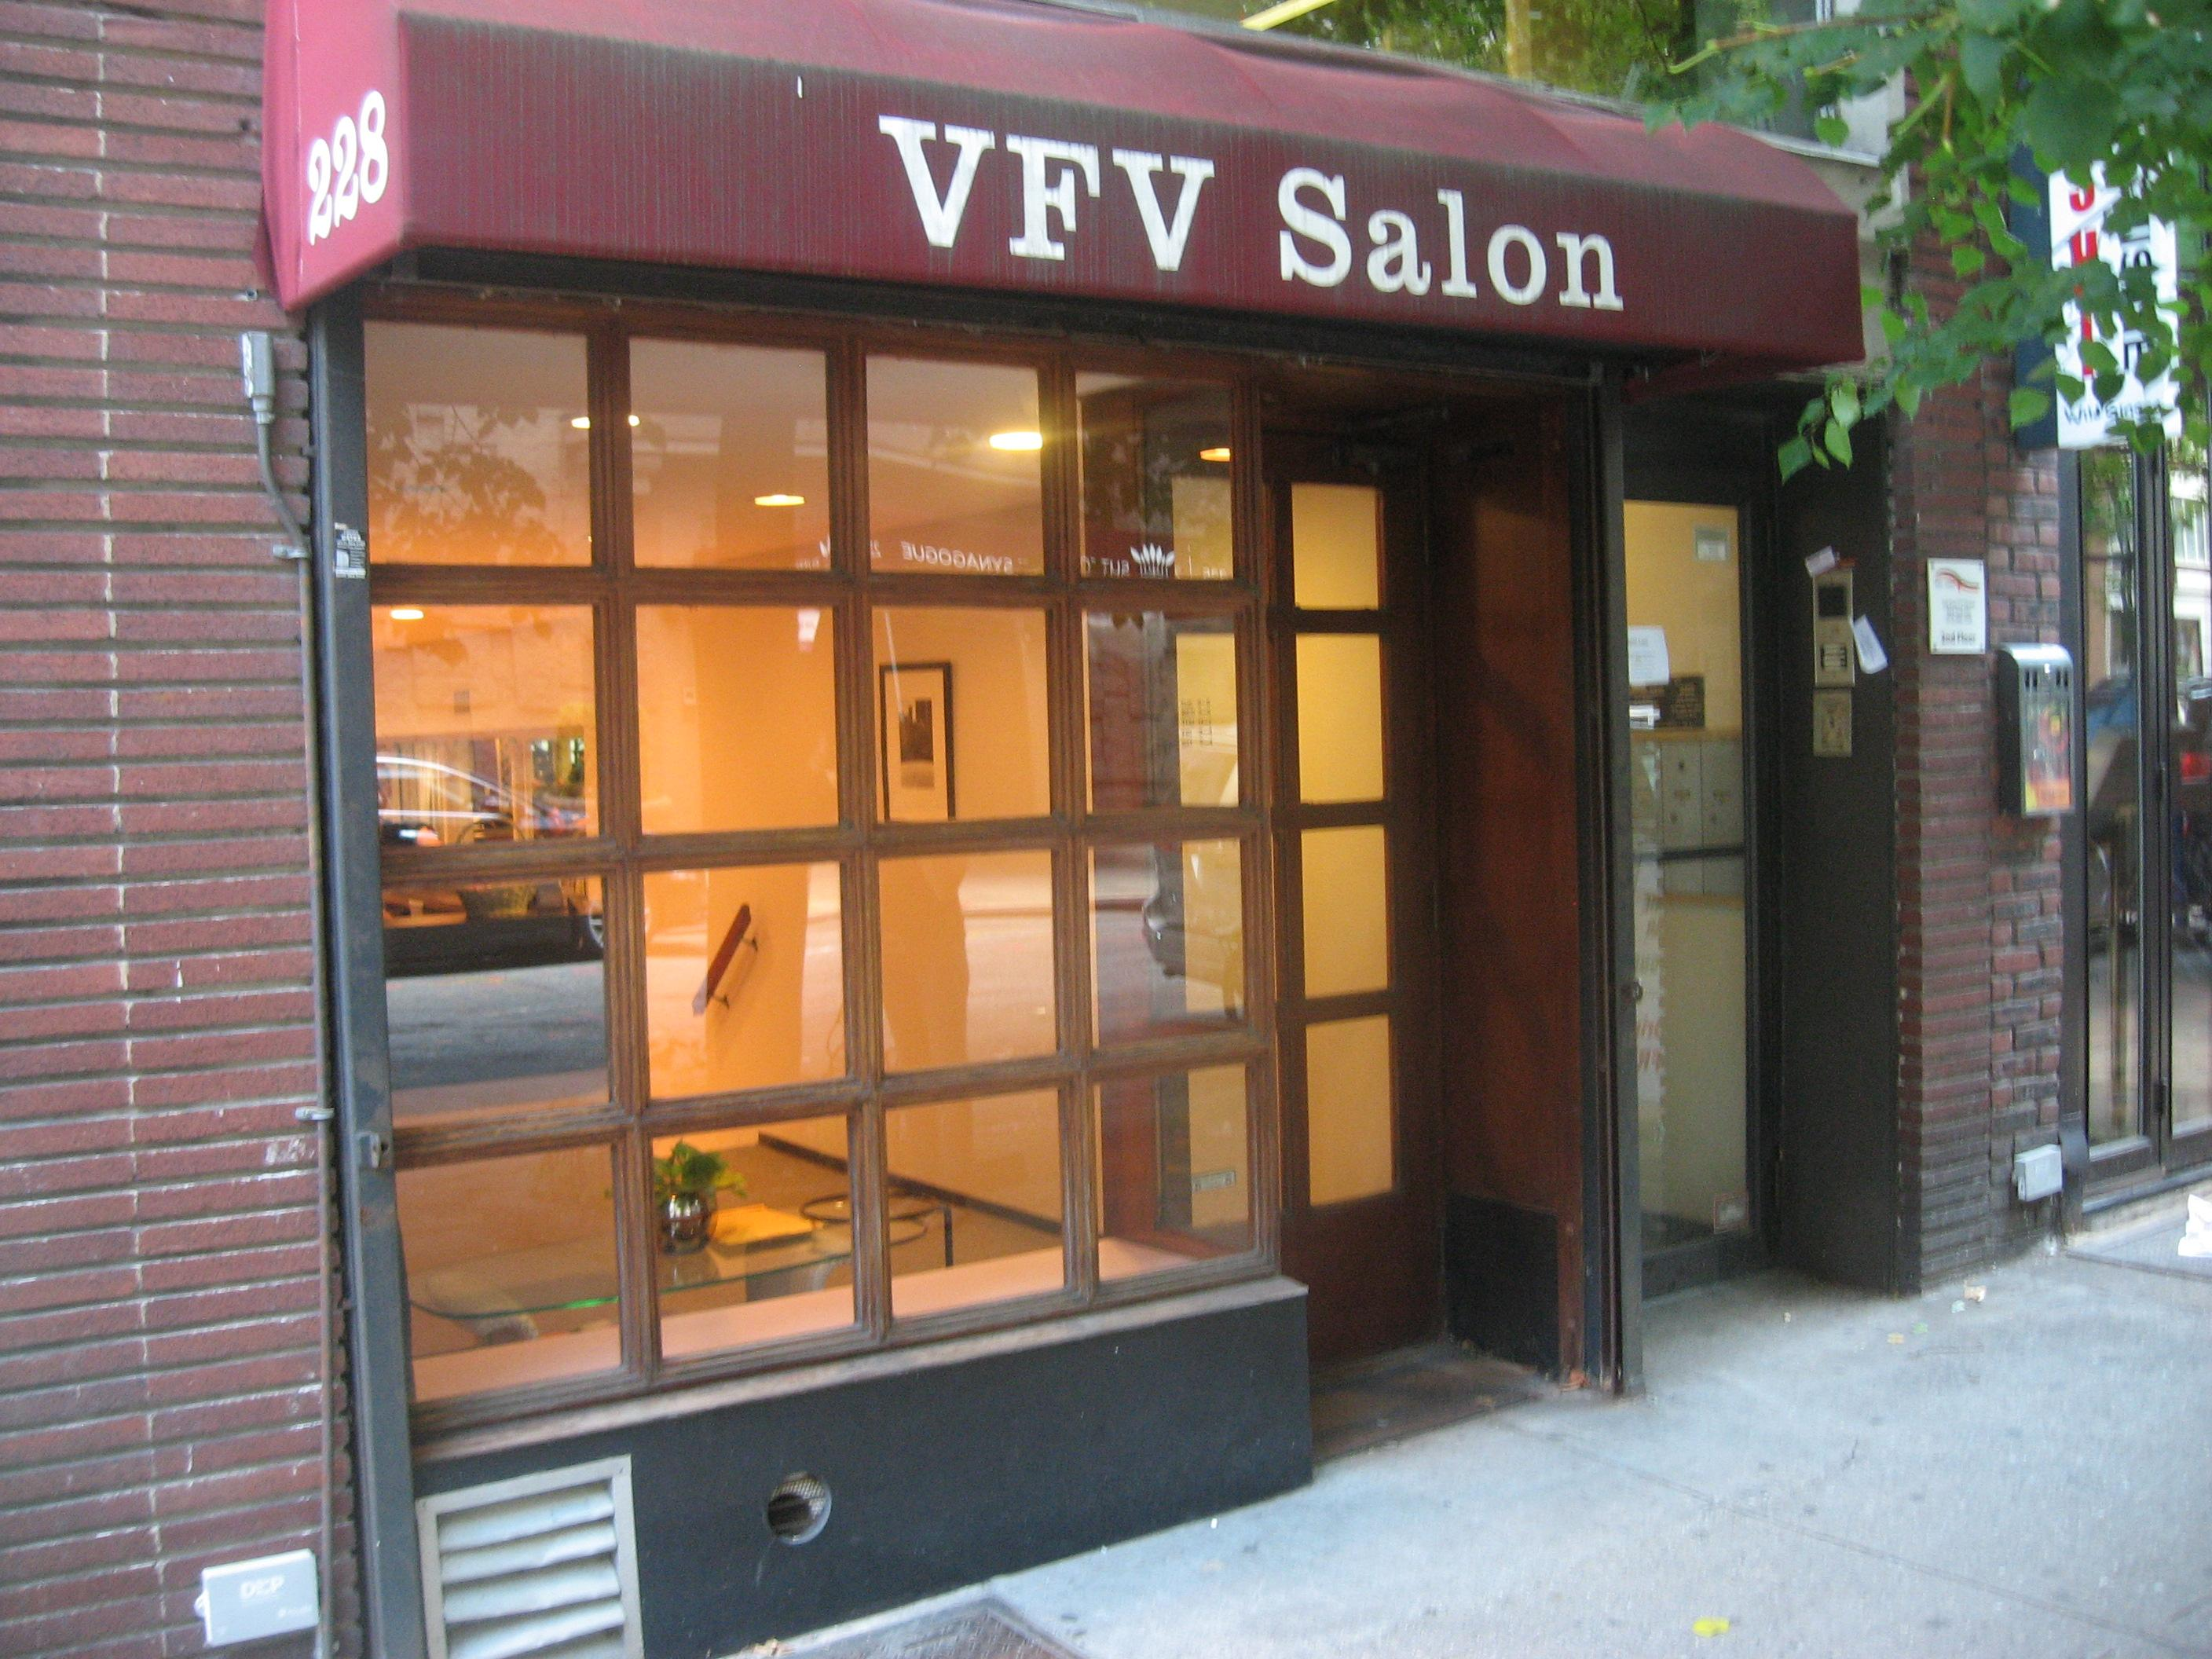 Mark de alwis salon at 228 e 51st st new york ny on fave for A salon on 51st ave